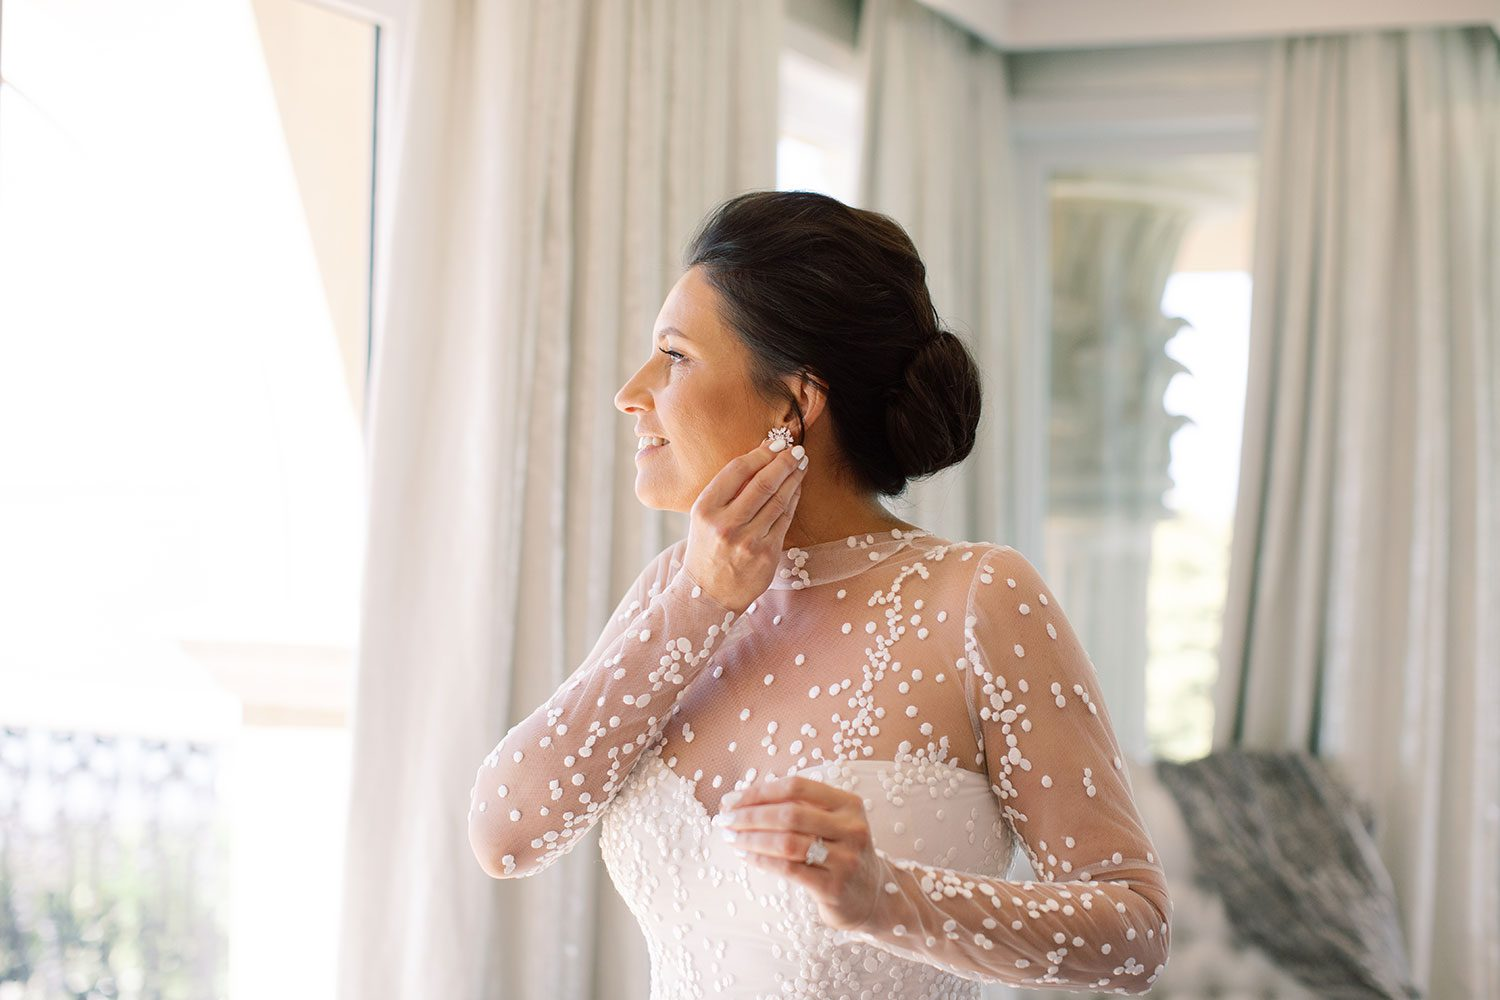 Bride wearing bespoke gown by Auckland wedding dress designer Vinka Design, with a high neckline and delicate spotted embroidery - putting on earrings